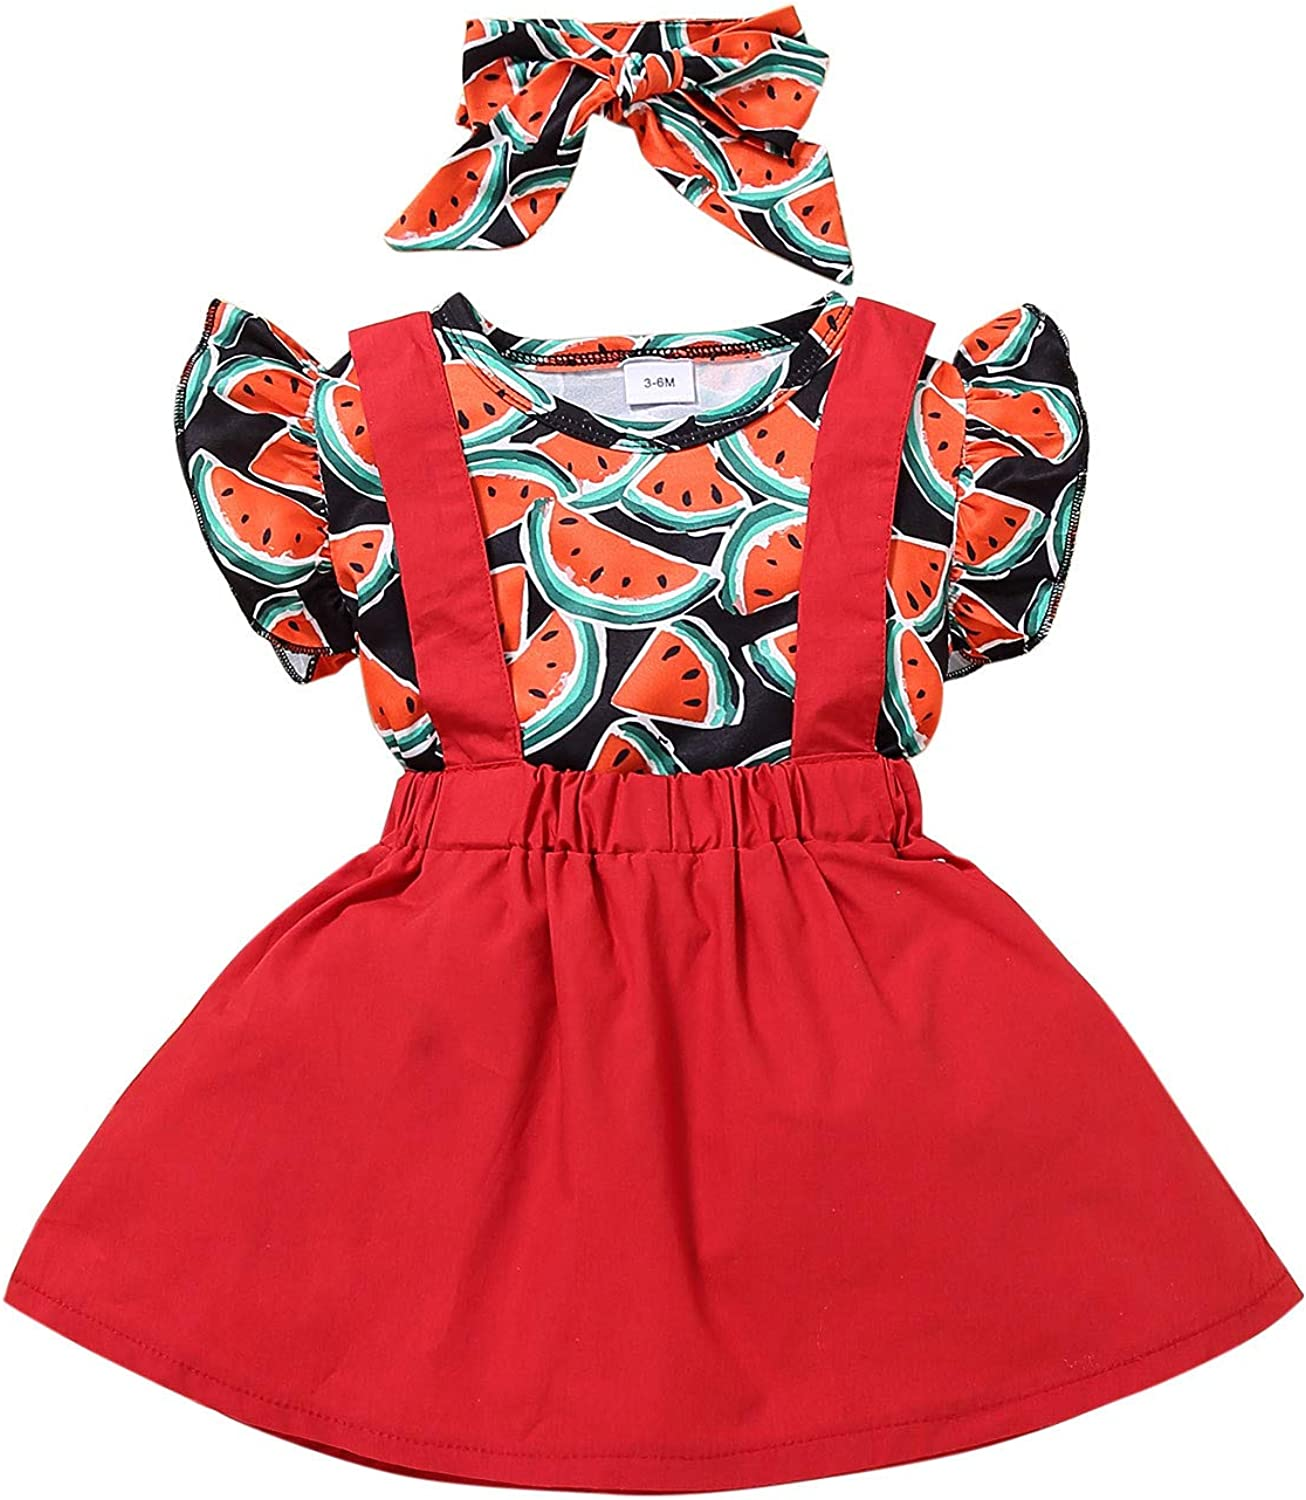 Fankle Toddler Baby Max 80% Max 90% OFF OFF Girl Solid Clothes Short Ruffle Sleeve Color